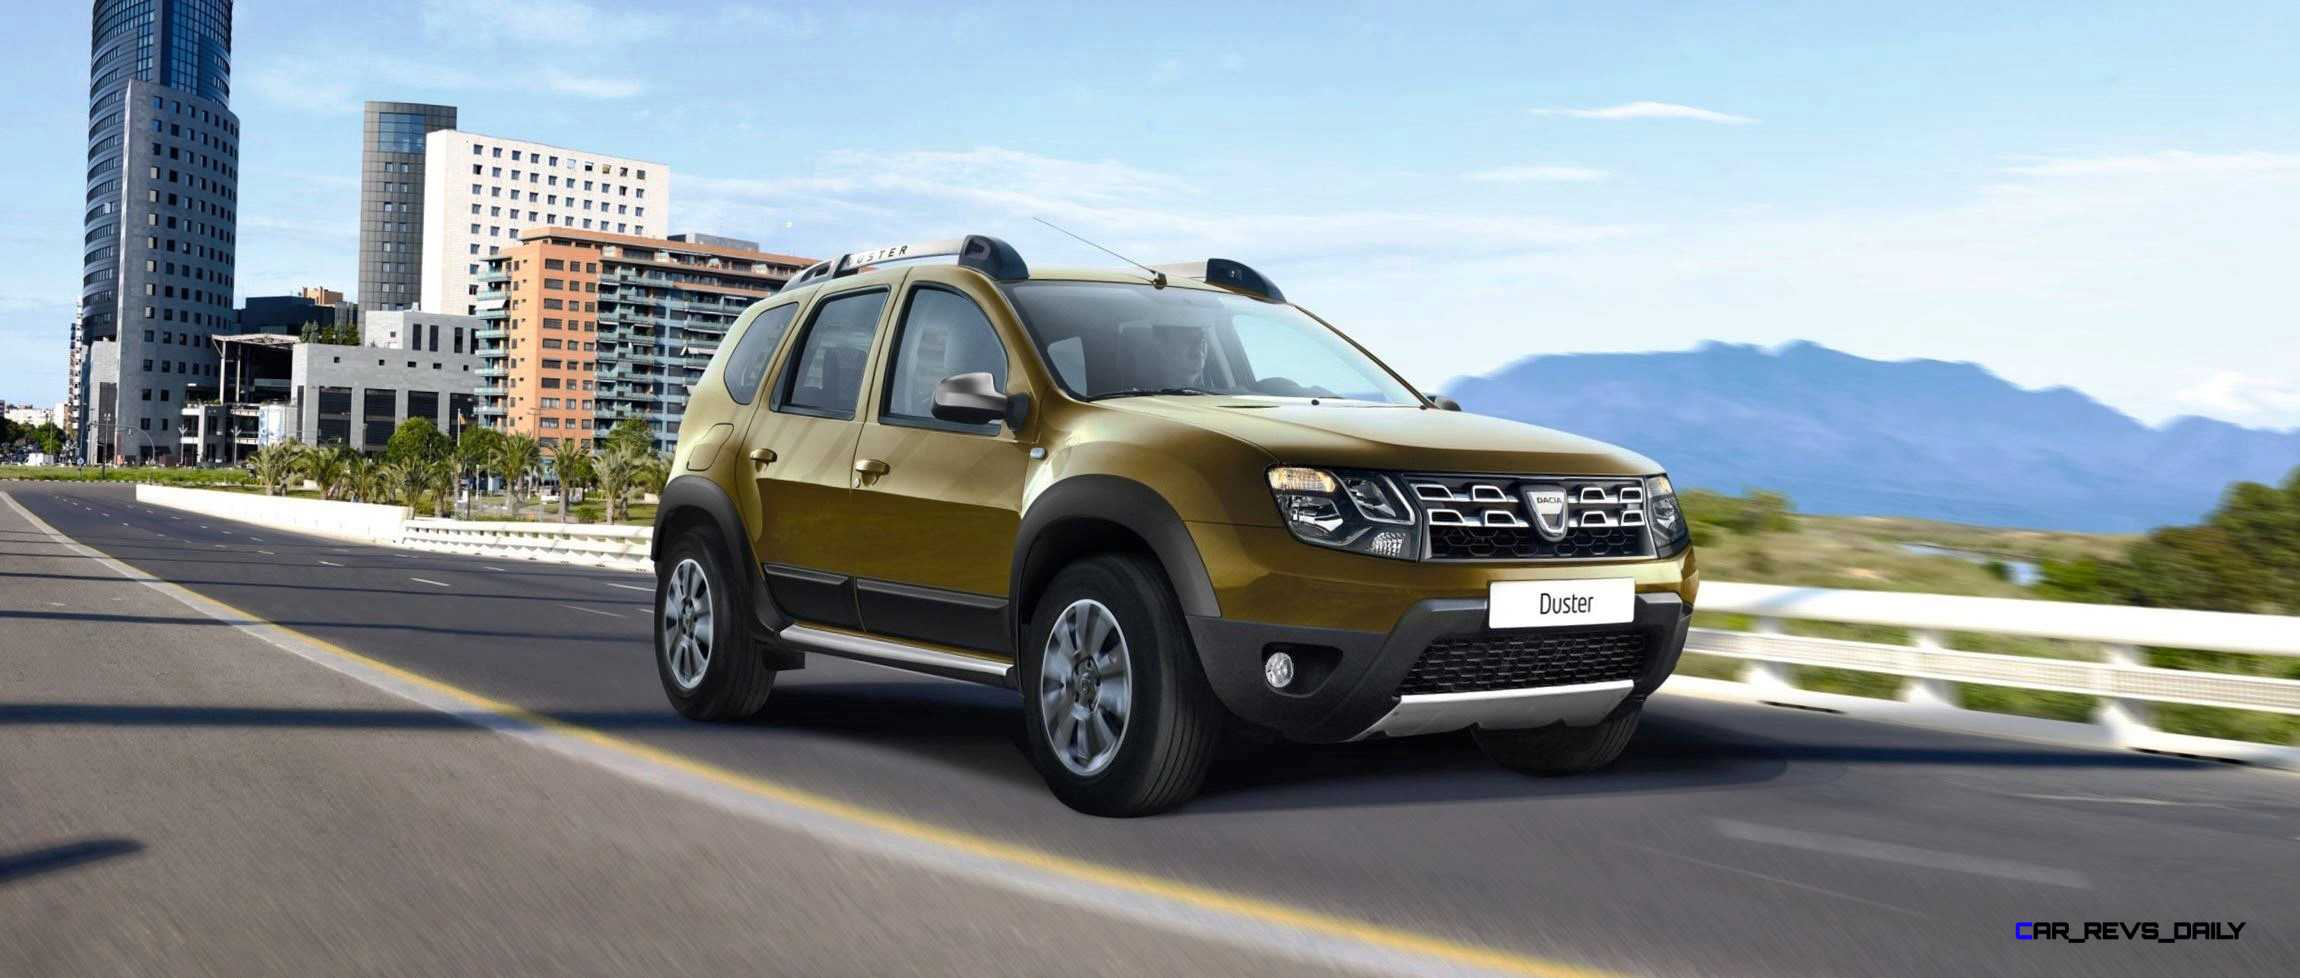 duster car song free download 2016 renault duster adventure edition price lakh renault duster. Black Bedroom Furniture Sets. Home Design Ideas